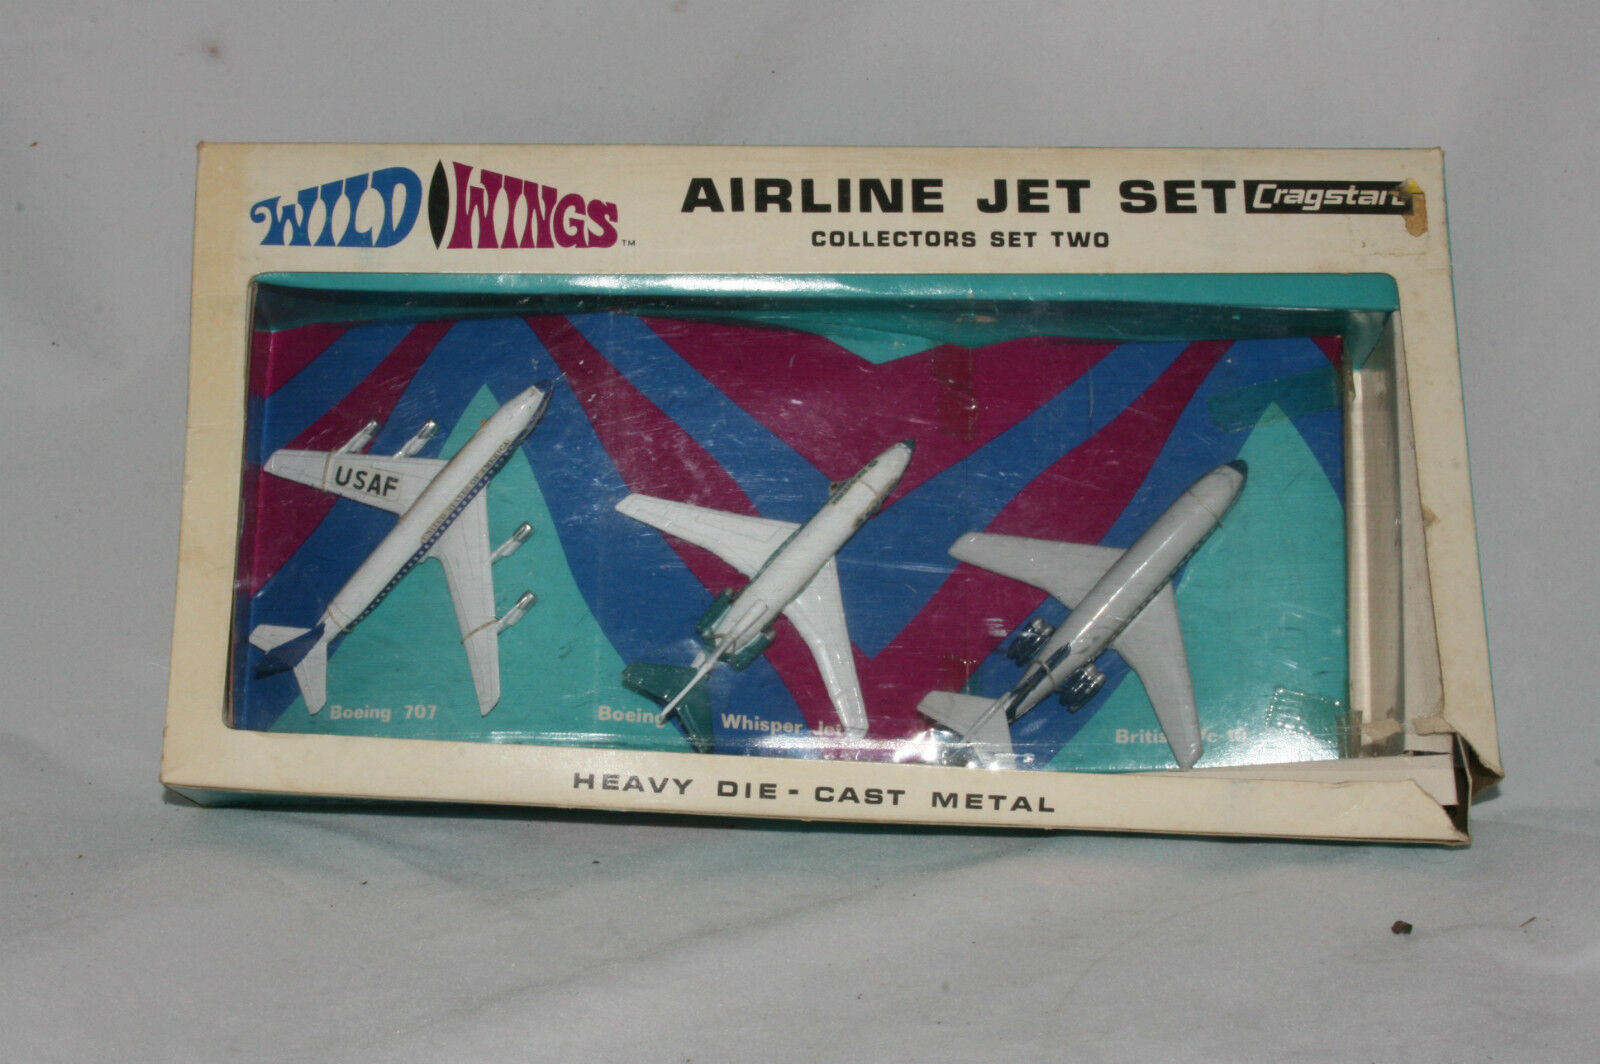 1960's Cragstan Wild Wings Collectors Set 2, Airline Jet Set, MIB